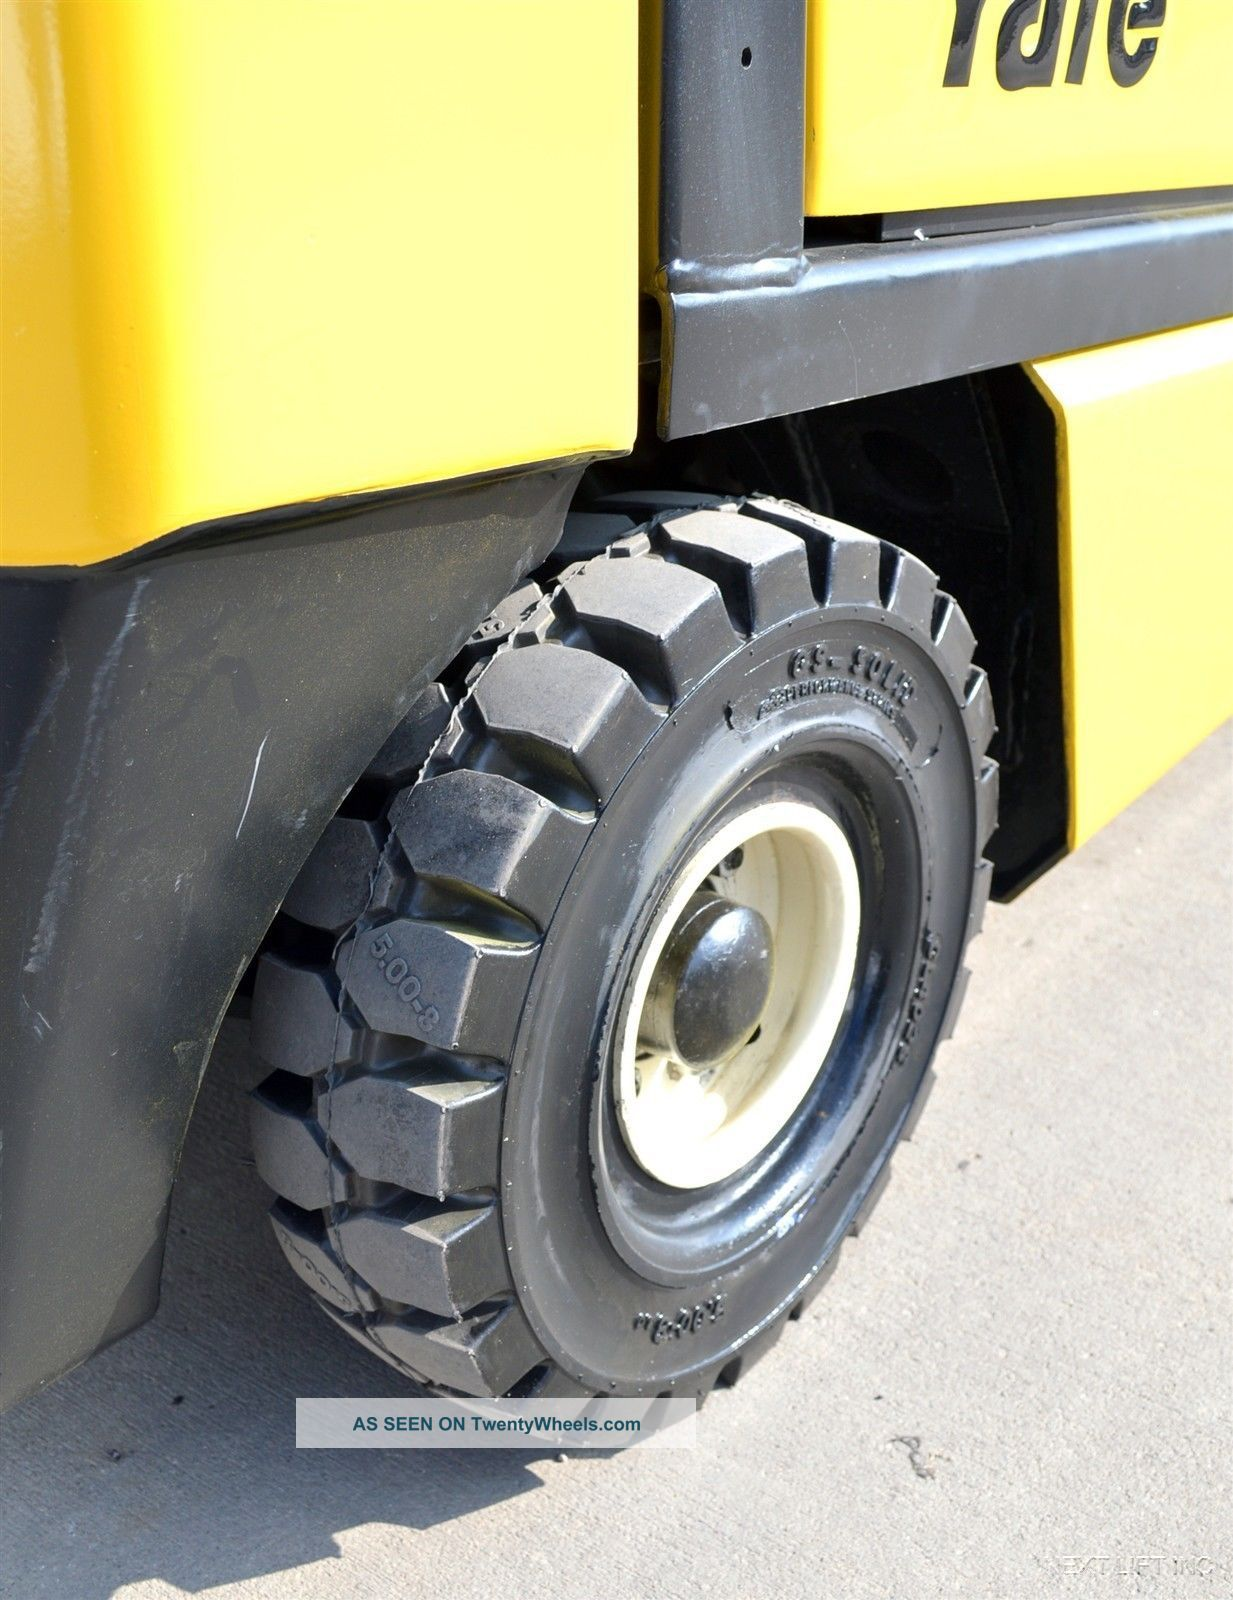 Bt Forklifts Class Prime Mover For Toyota together with Clark Gp Lb Forklift With Sideshift Lgw additionally Raymond Rss further Yale Glp Lb Lpg Pneumatic Forklift Lb  pact Air Tires Lgw furthermore Bt Prime Mover Rrx Lgw. on bt prime mover forklifts